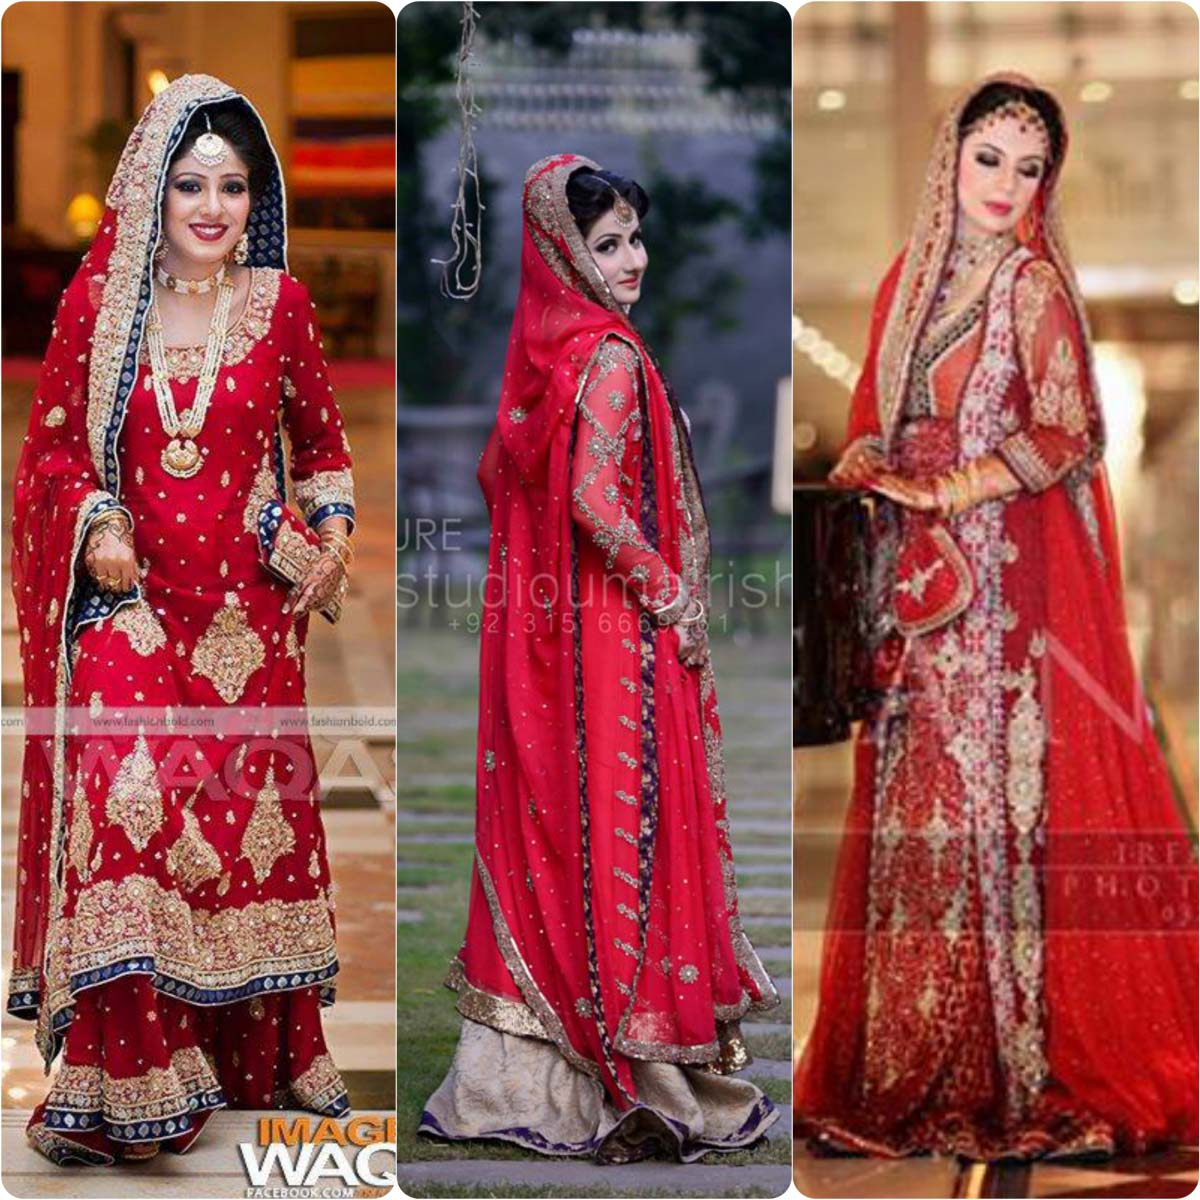 Best Bridal Red Color Barat Dresses 2016 2017 Stylo Planet